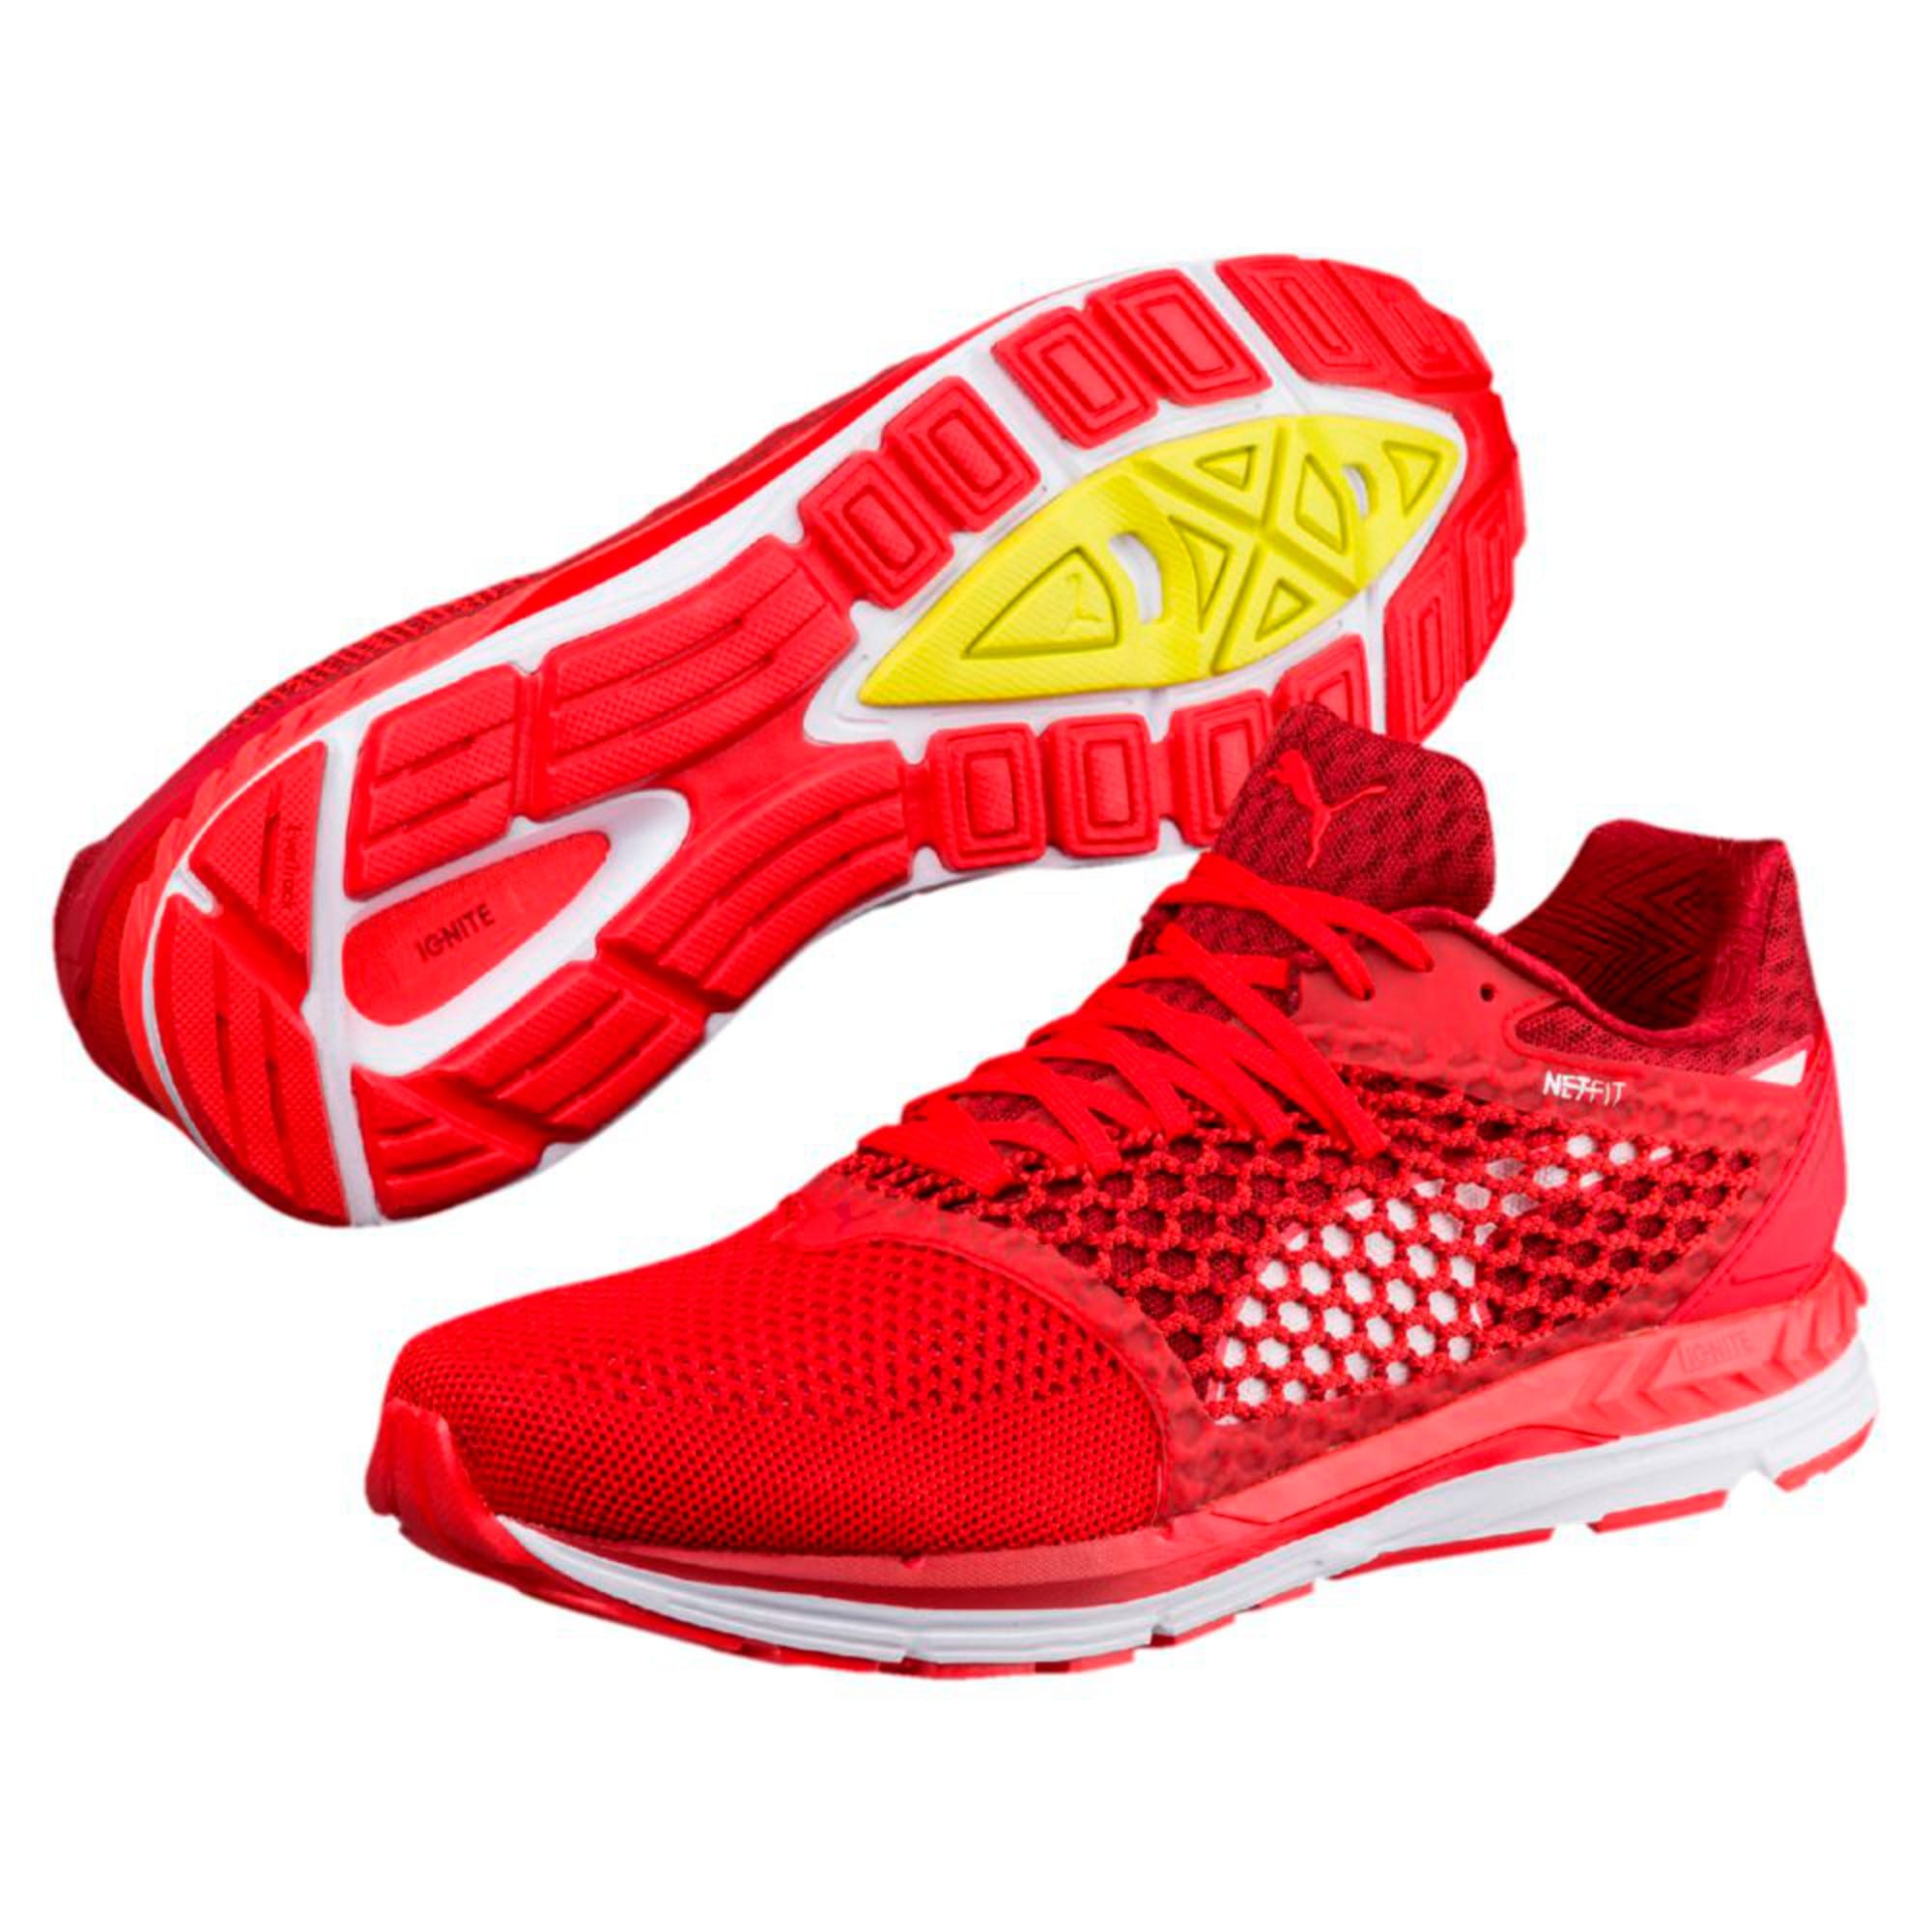 Thumbnail 1 of Speed 600 IGNITE 3 Men's Running Shoes, Scarlet-Red Dahlia-White, medium-IND